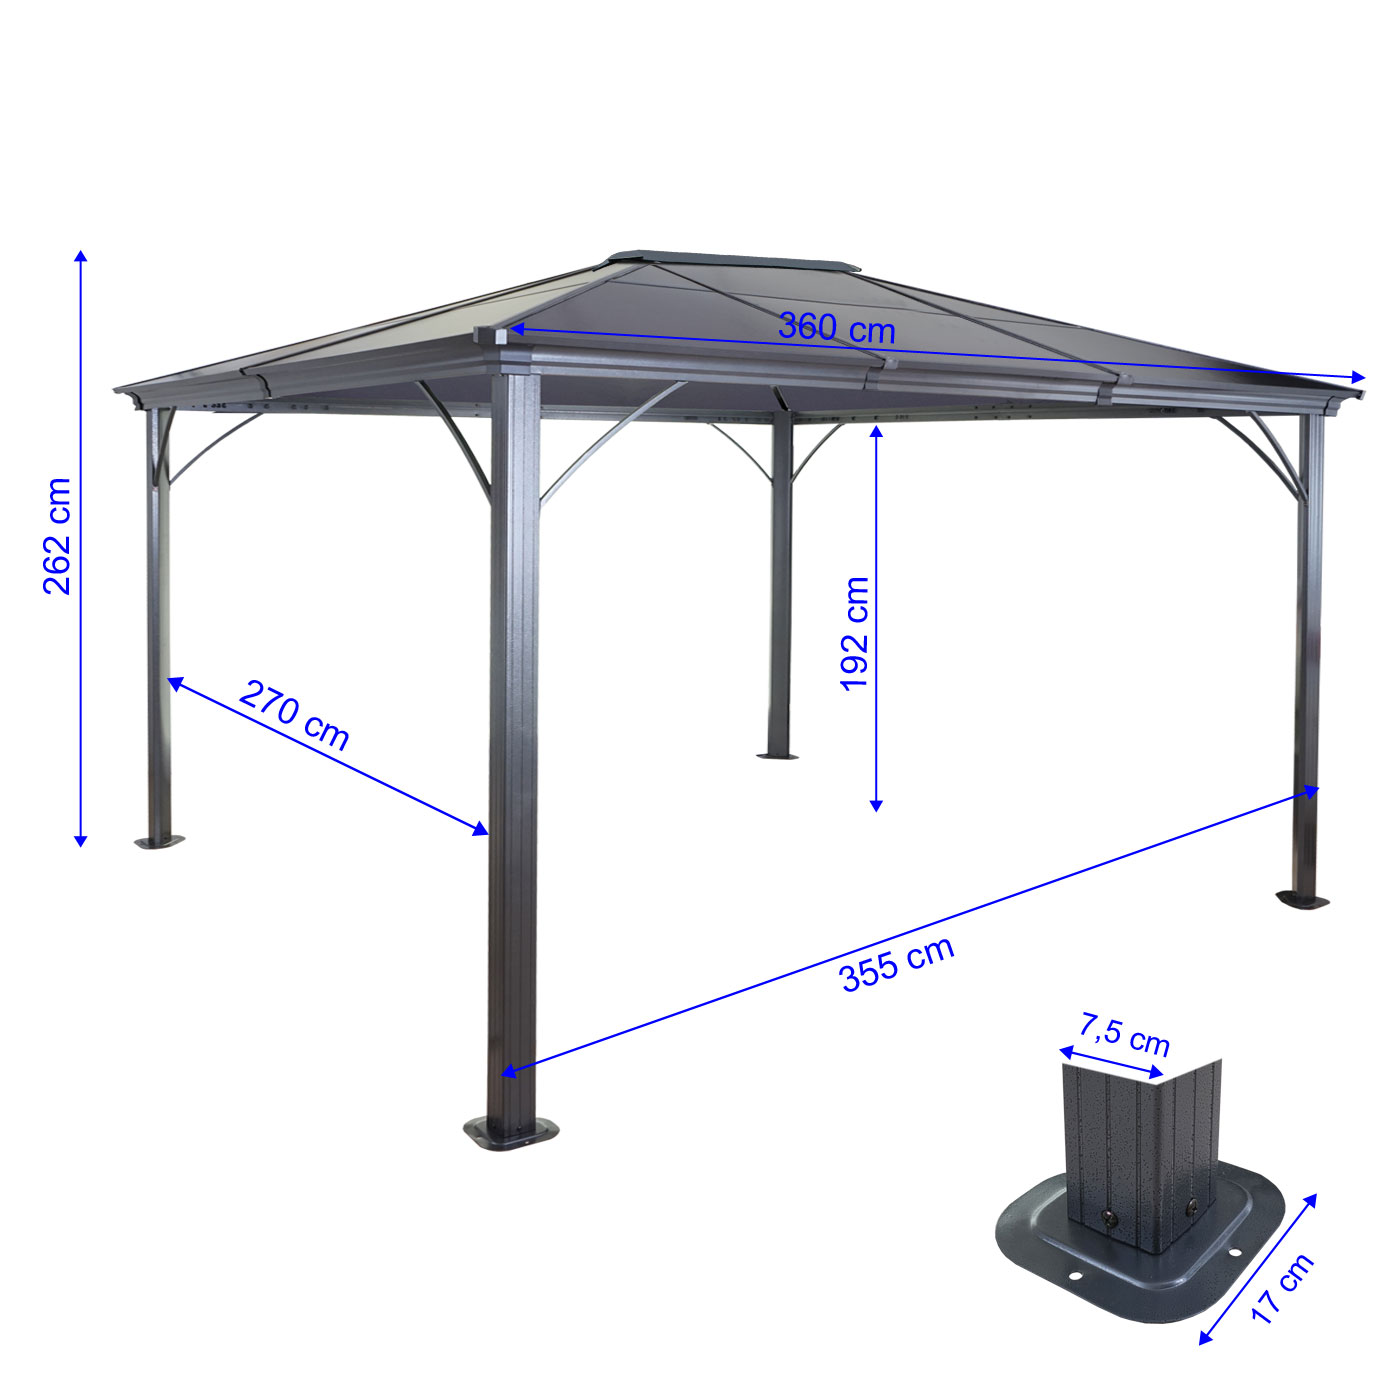 hardtop pergola mcw c74 garten pavillon kunststoff dach seitenwand moskitonetz alu 3x3 6m. Black Bedroom Furniture Sets. Home Design Ideas